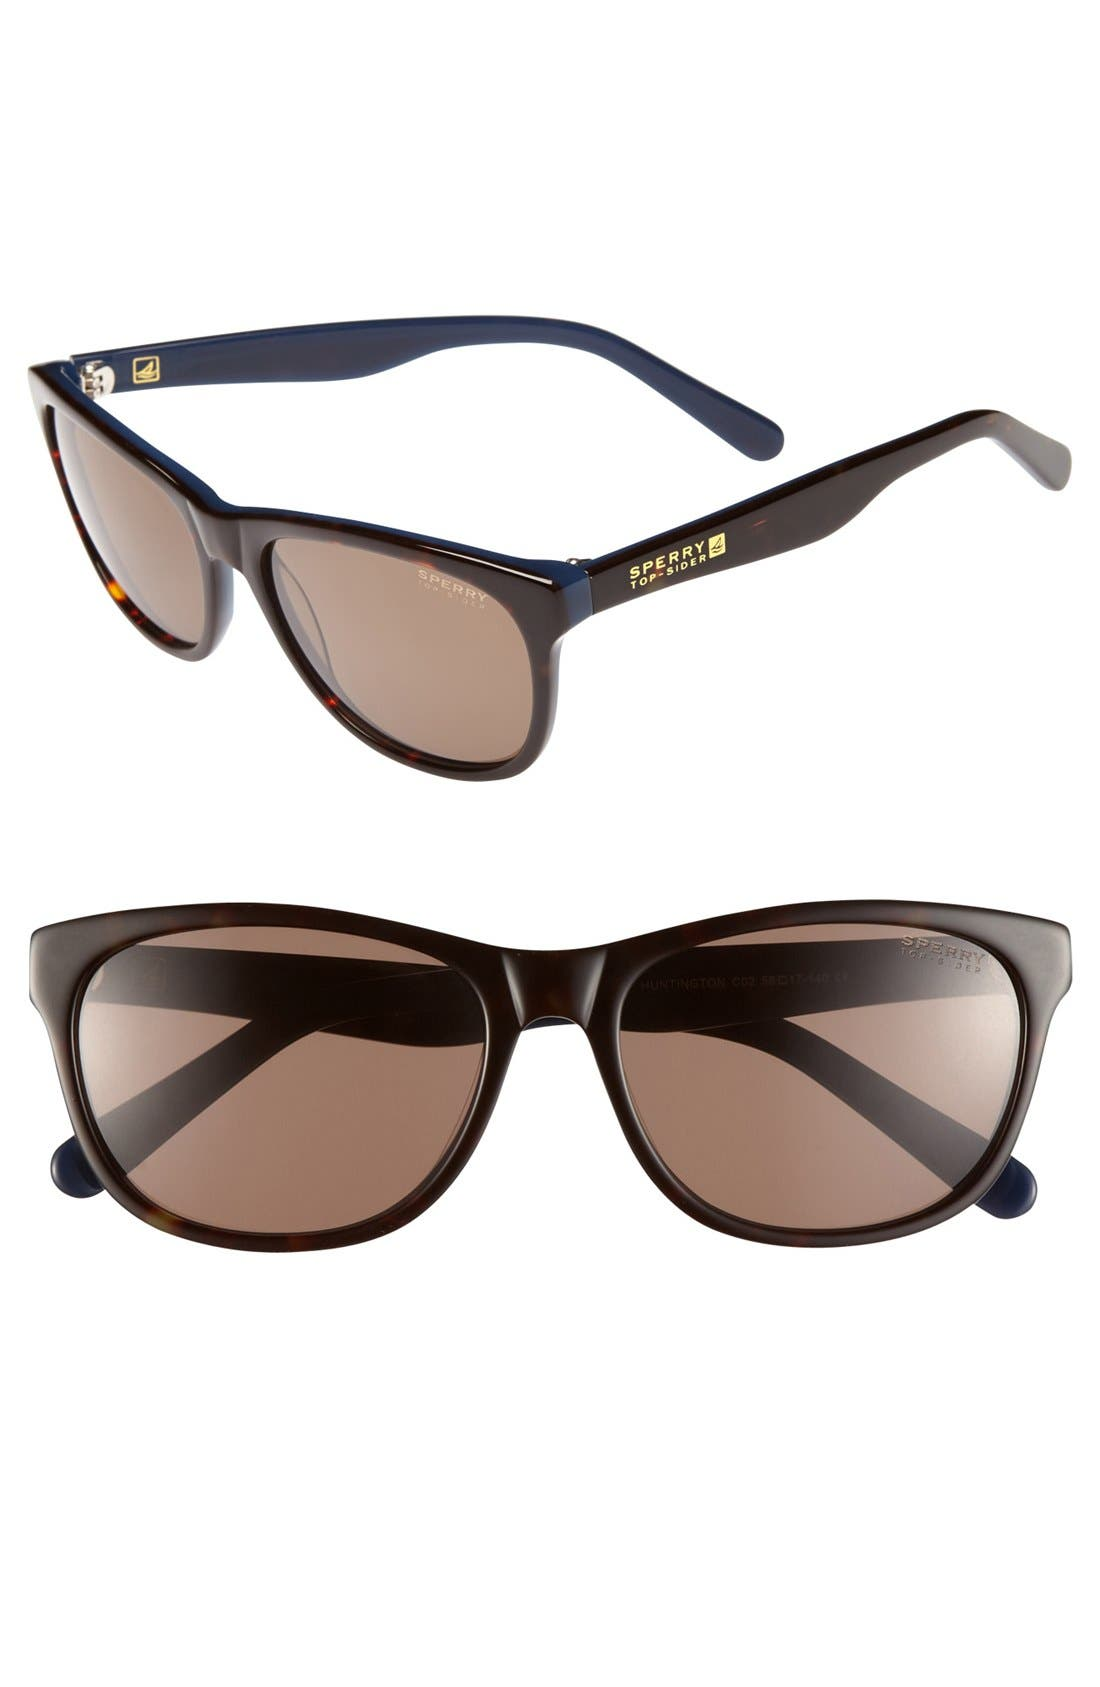 Main Image - Sperry Top-Sider® 'Huntington' 56mm Sunglasses (Online Only)